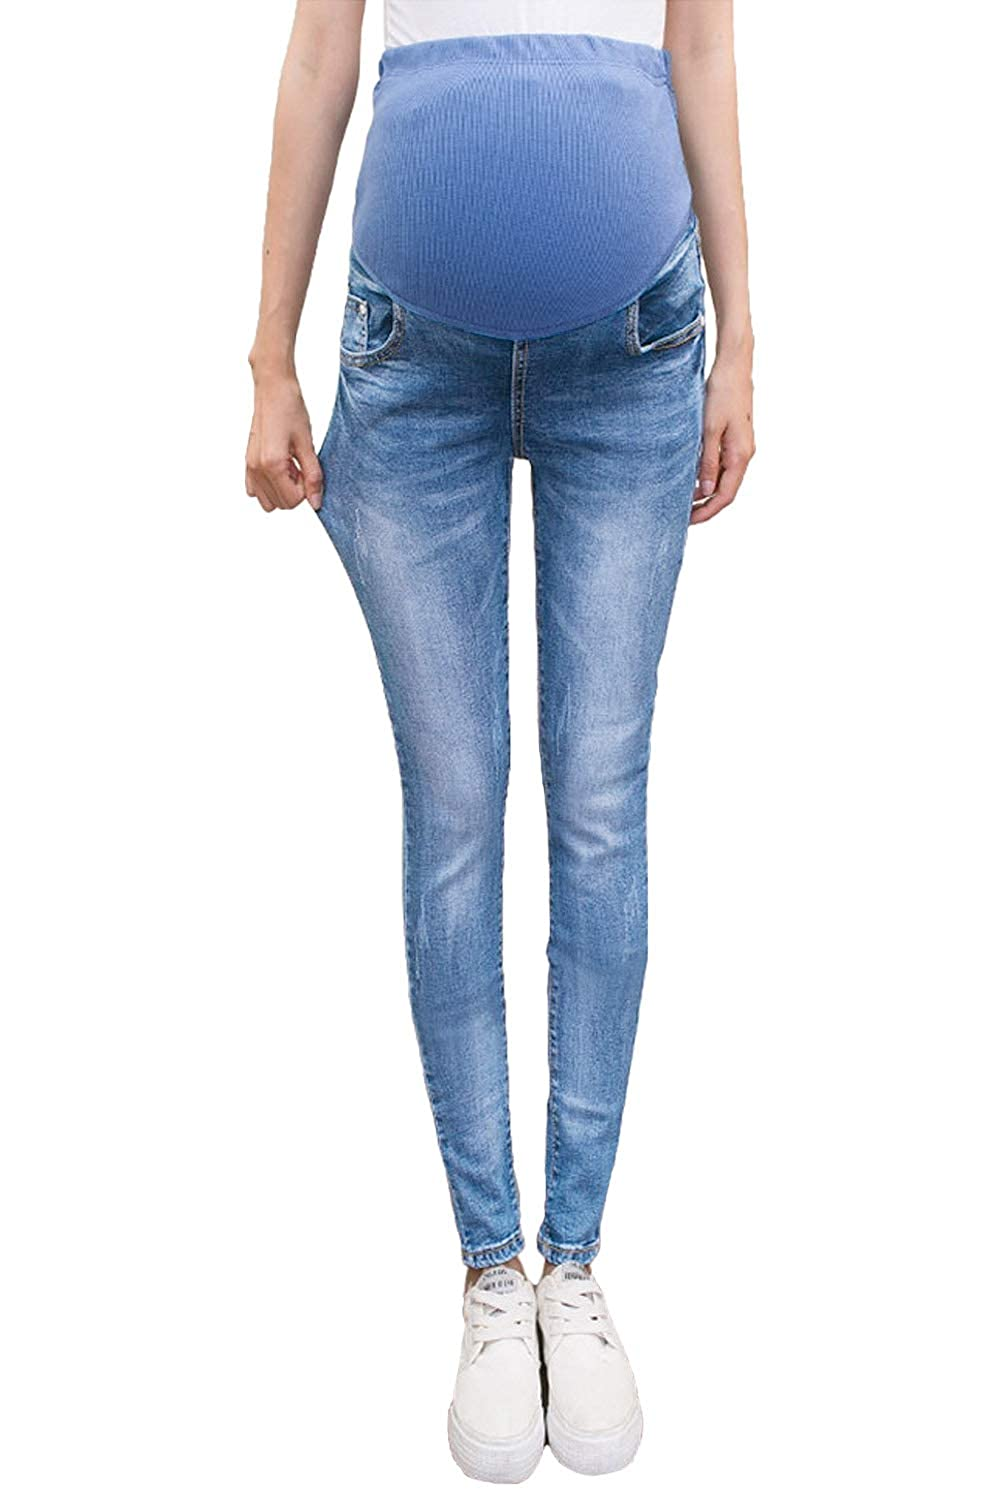 bd56bf991ddac Maternity Pants Over Belly Skinny Stretch Slim Denim Jeans for Pregnancy  Women at Amazon Women's Clothing store: